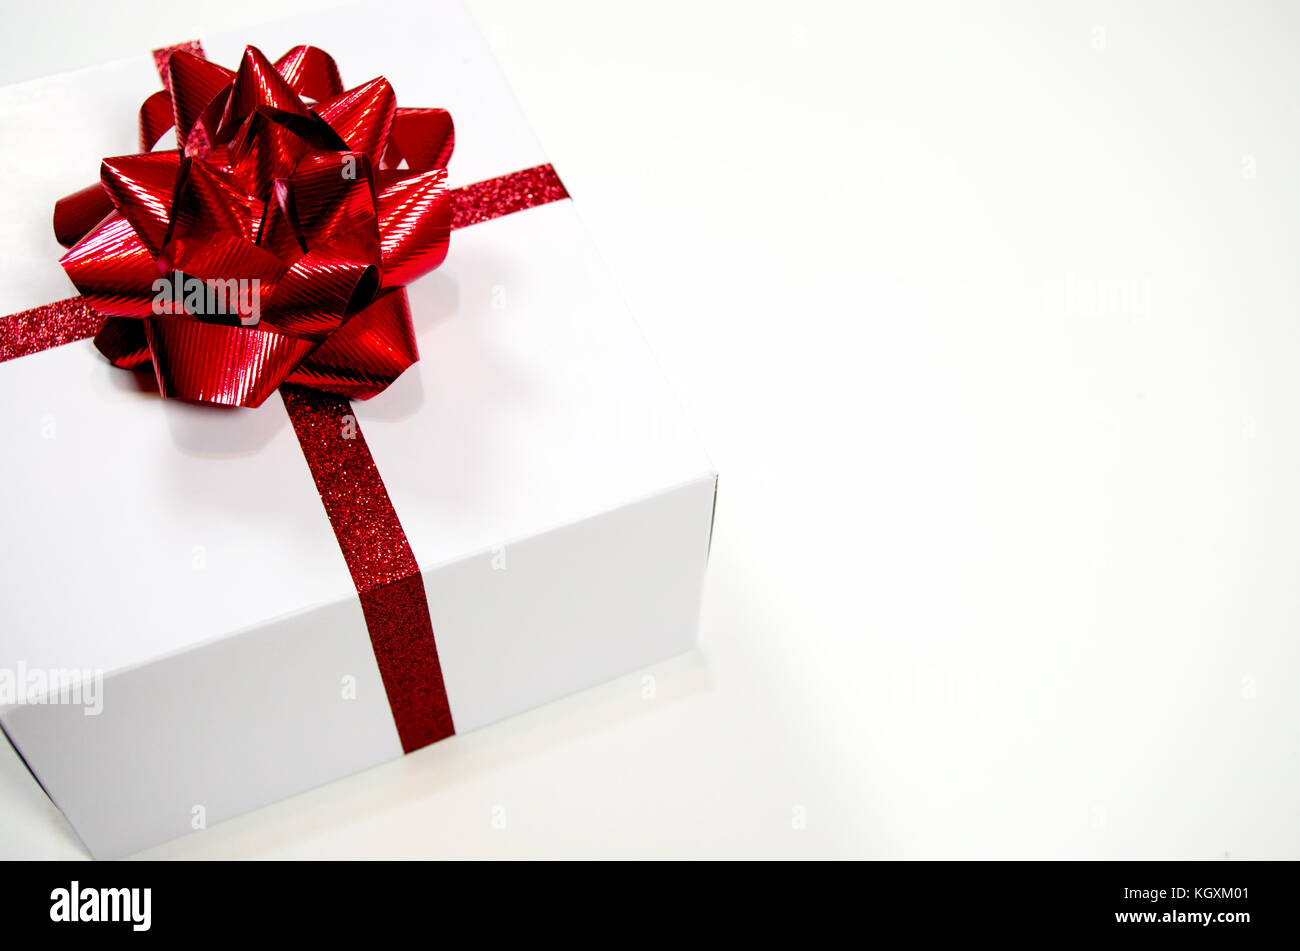 Single Christmas present with red bow on a white background Stock Photo